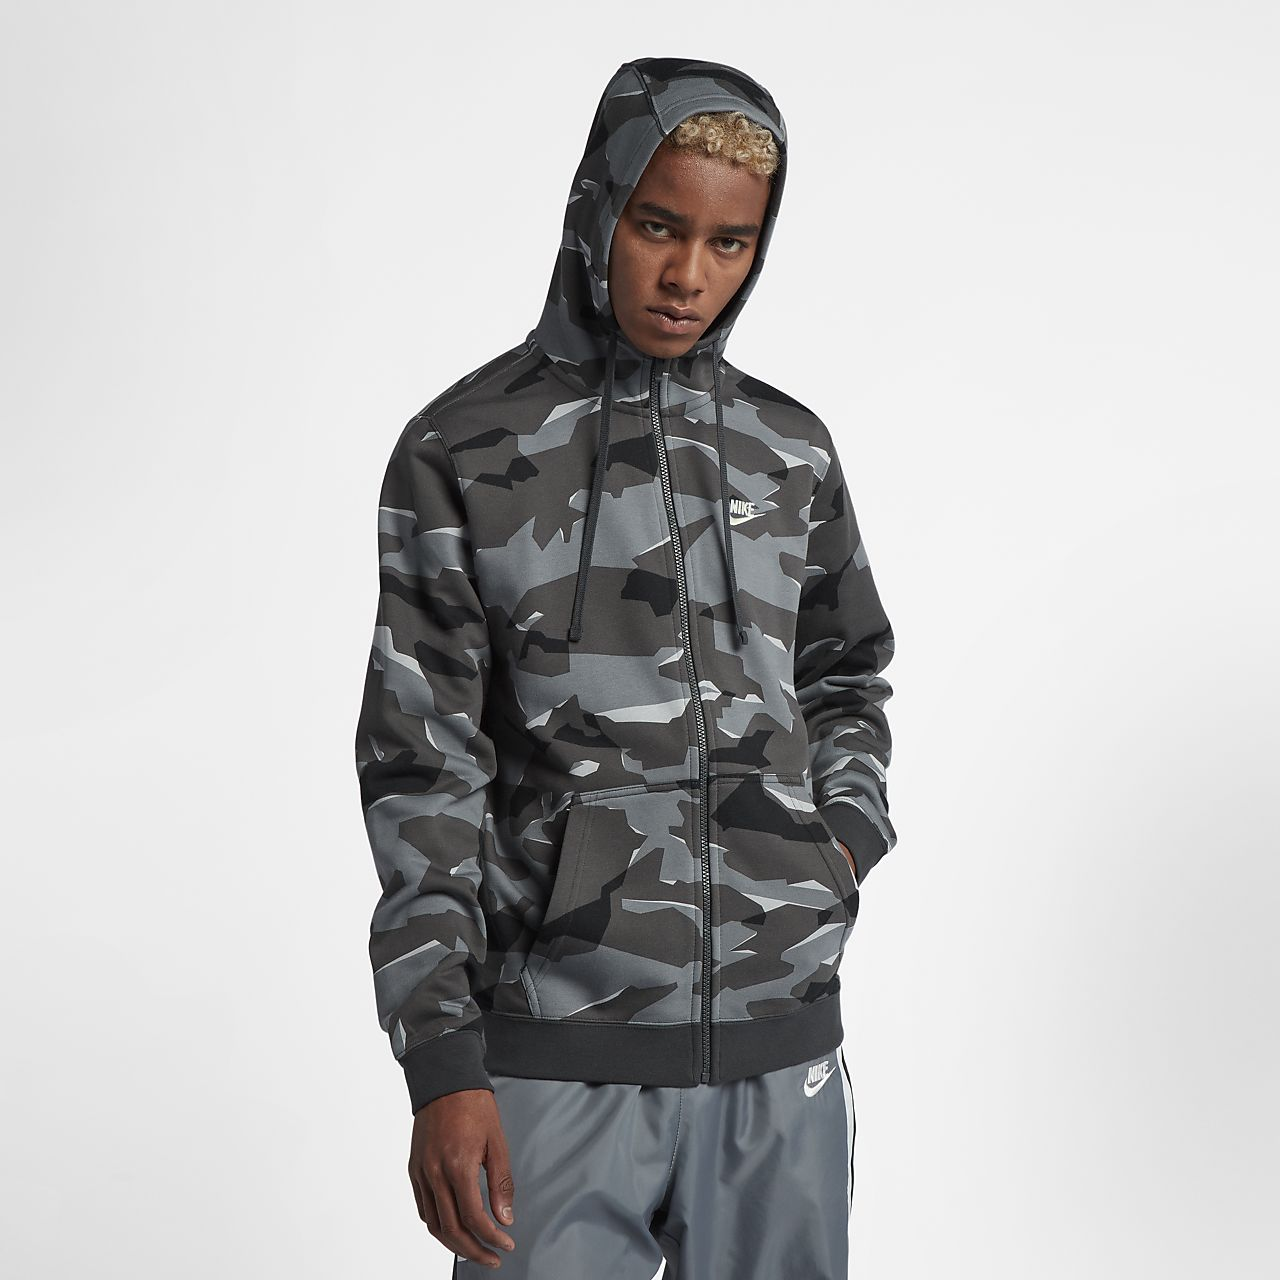 d891b25288 Nike Sportswear Club Fleece Men s Full-Zip Camo Hoodie. Nike.com AU